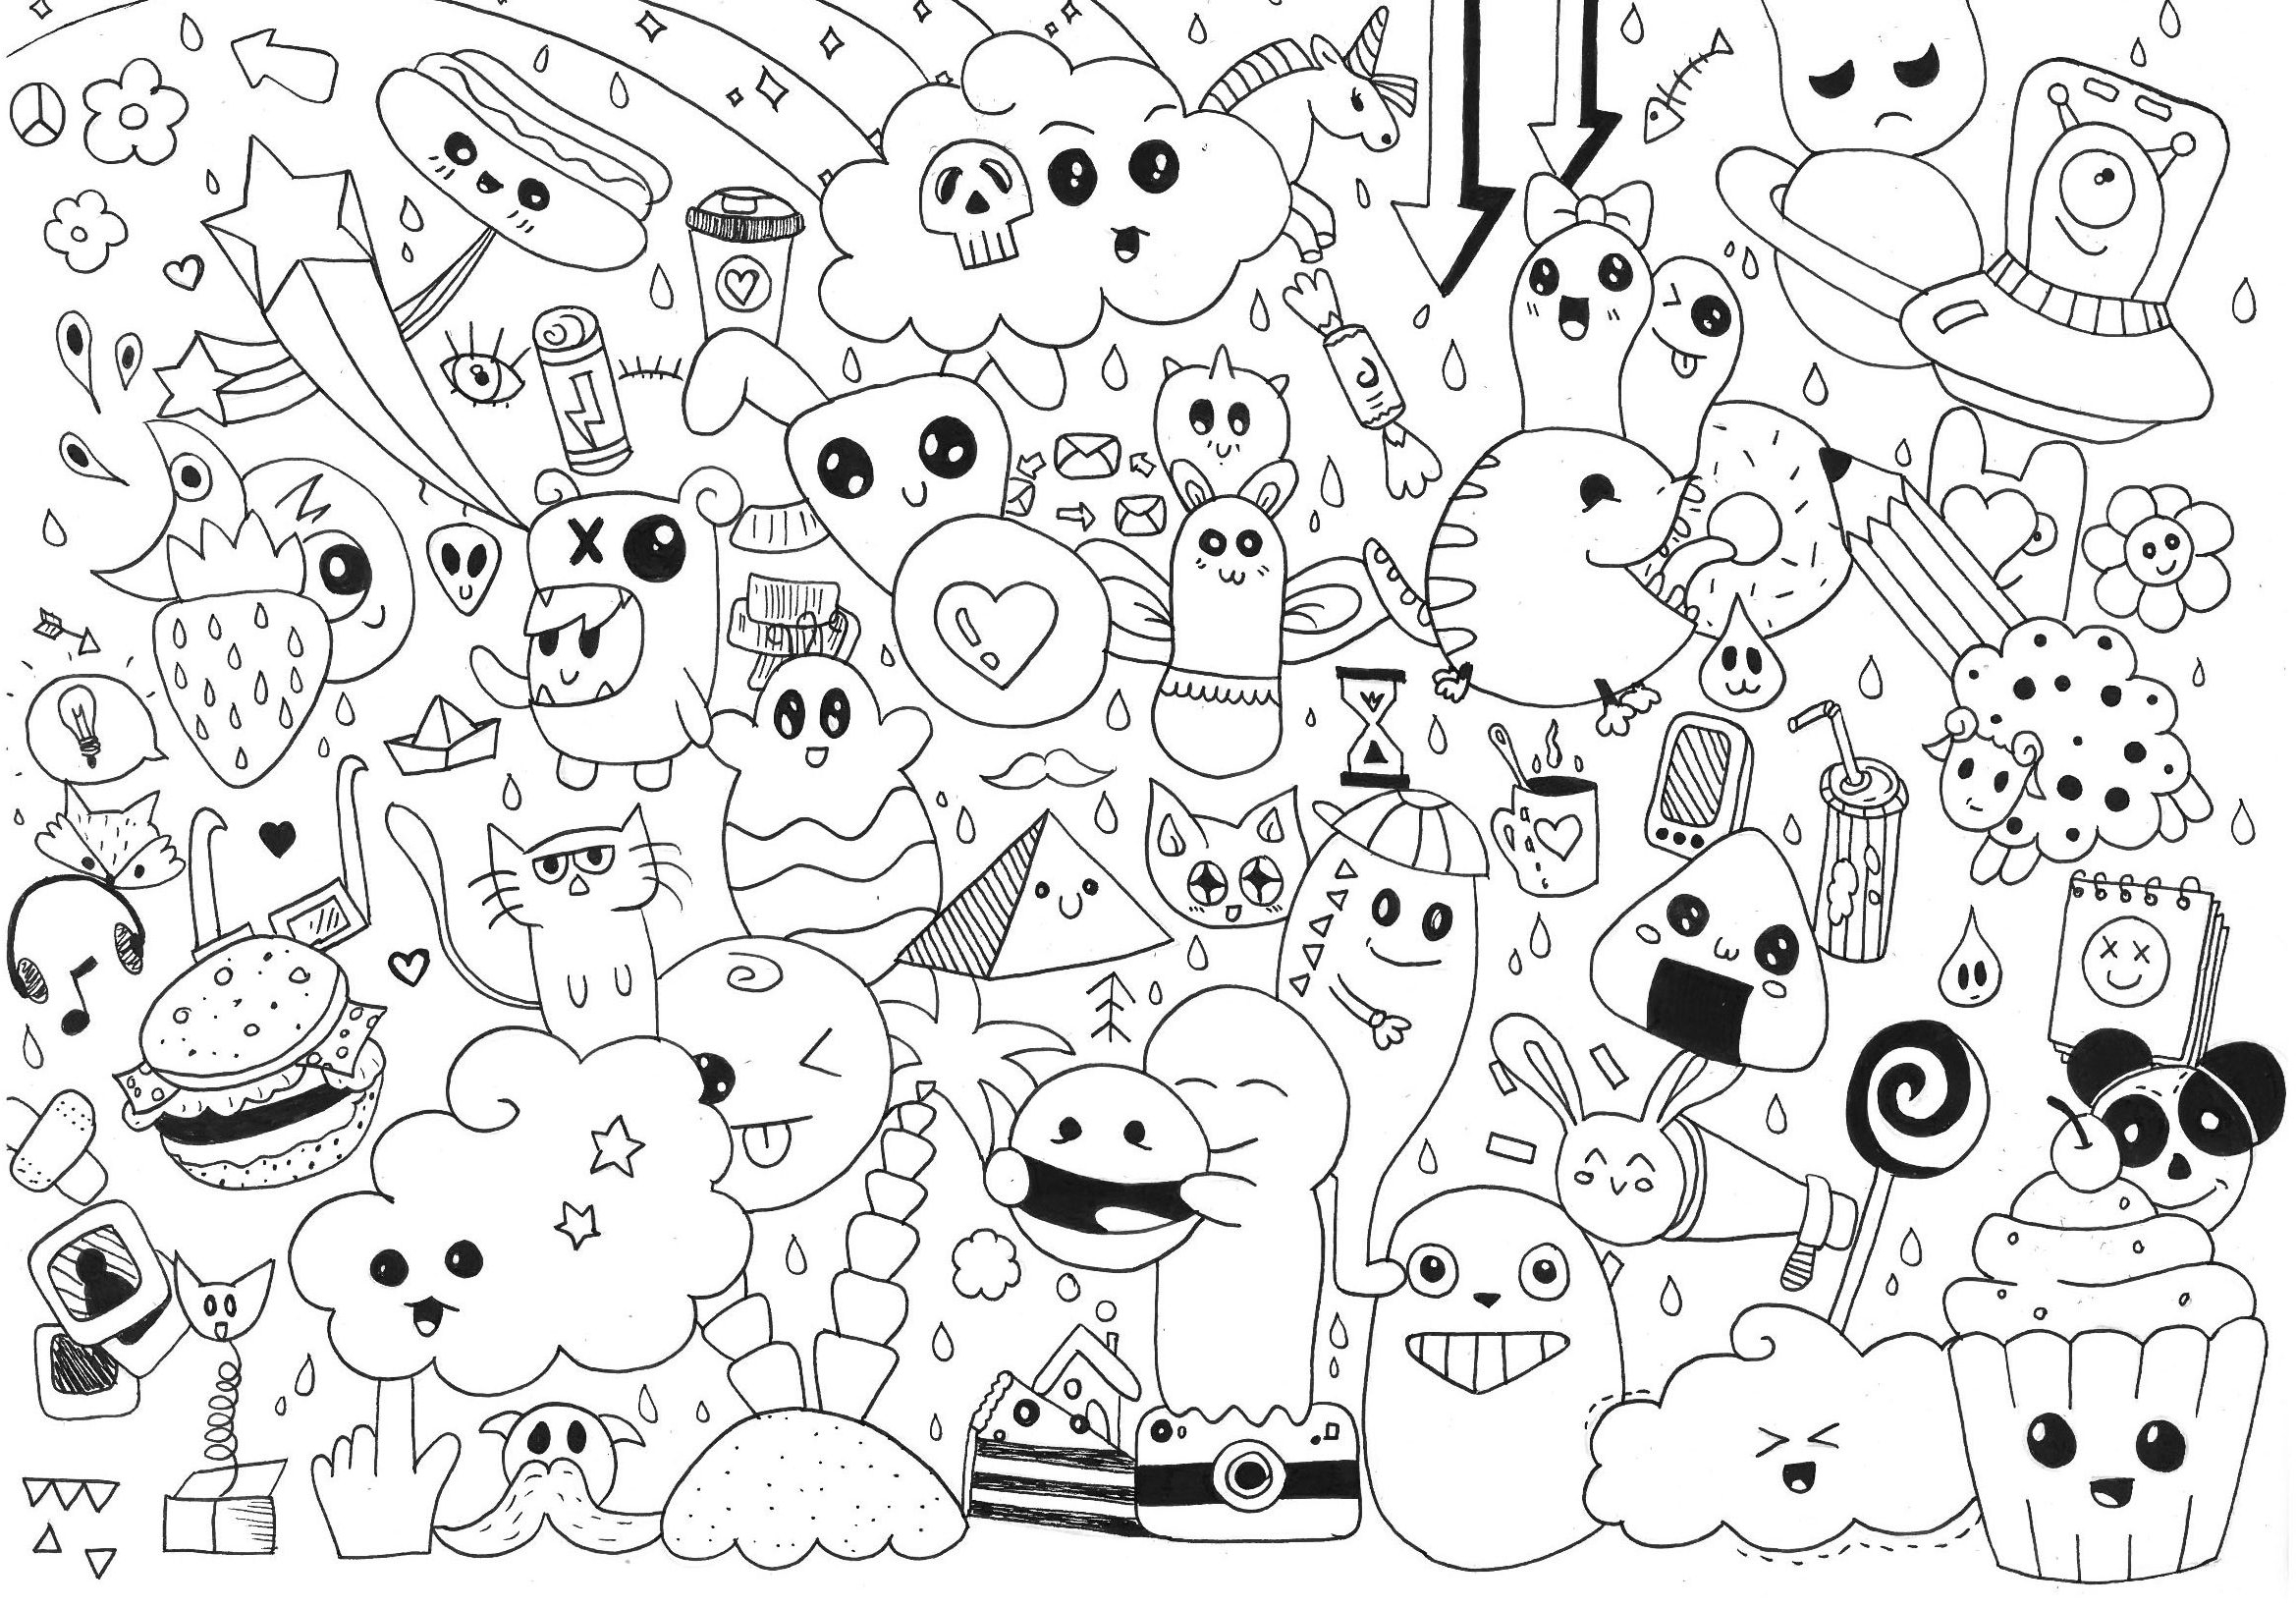 Cute Food Coloring Pages Kawaii Food Coloring Pages Only Coloring Pages